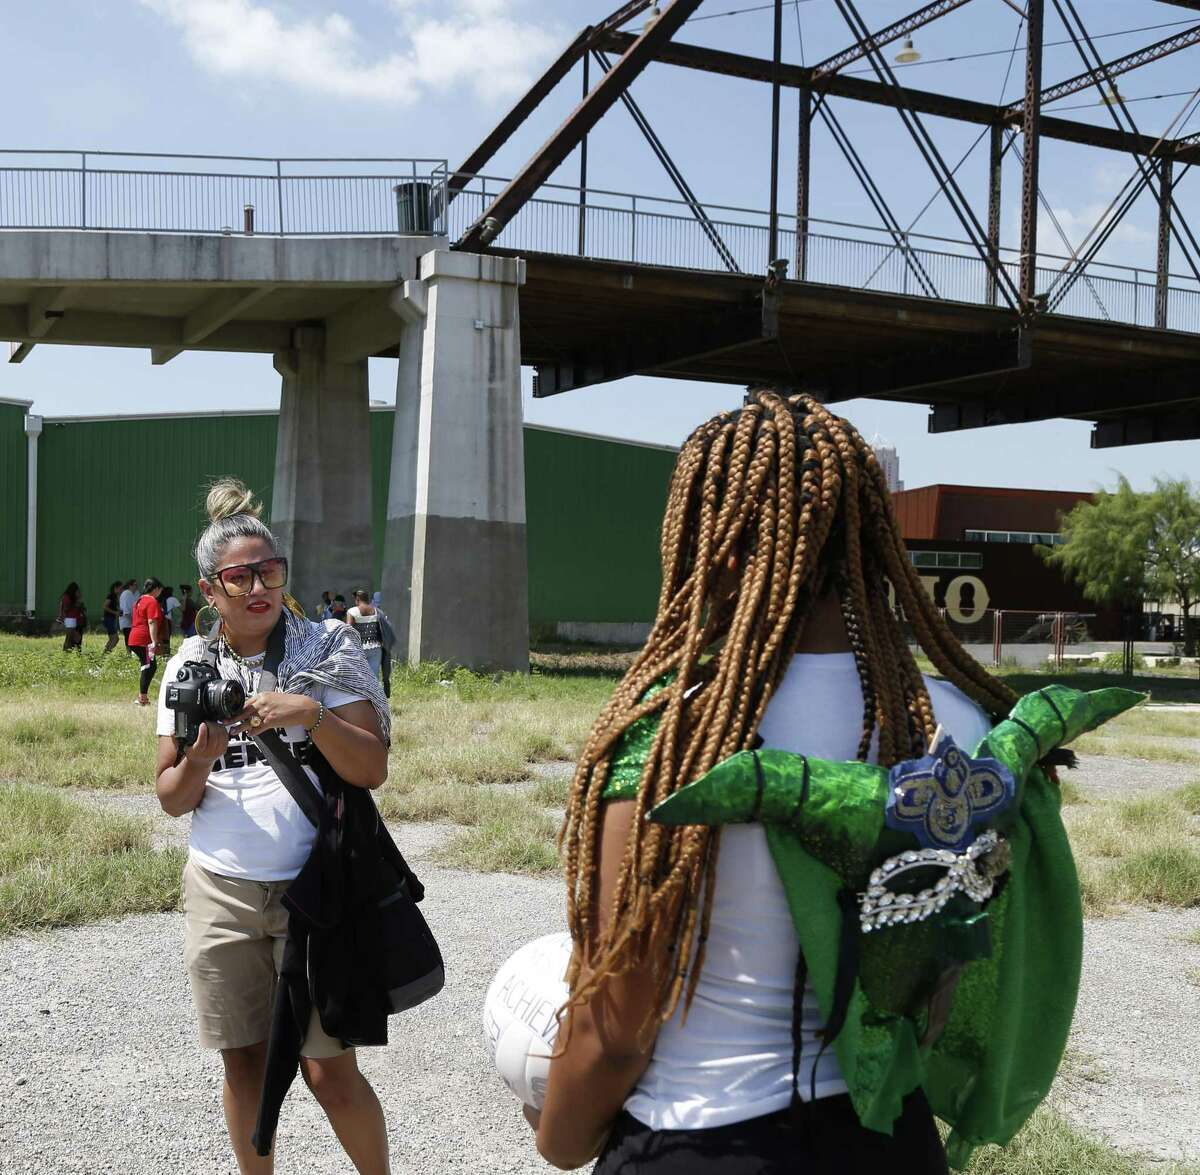 Kristel A. Orta-Puente prepares to photograph Keyalana Bethel,15. Several local female photographers will work with more than 30 girls from the Girls Zone Summer Camp on how to use photography to document good things about their East Side neighborhood on Wednesday, Aug.1, 2018.